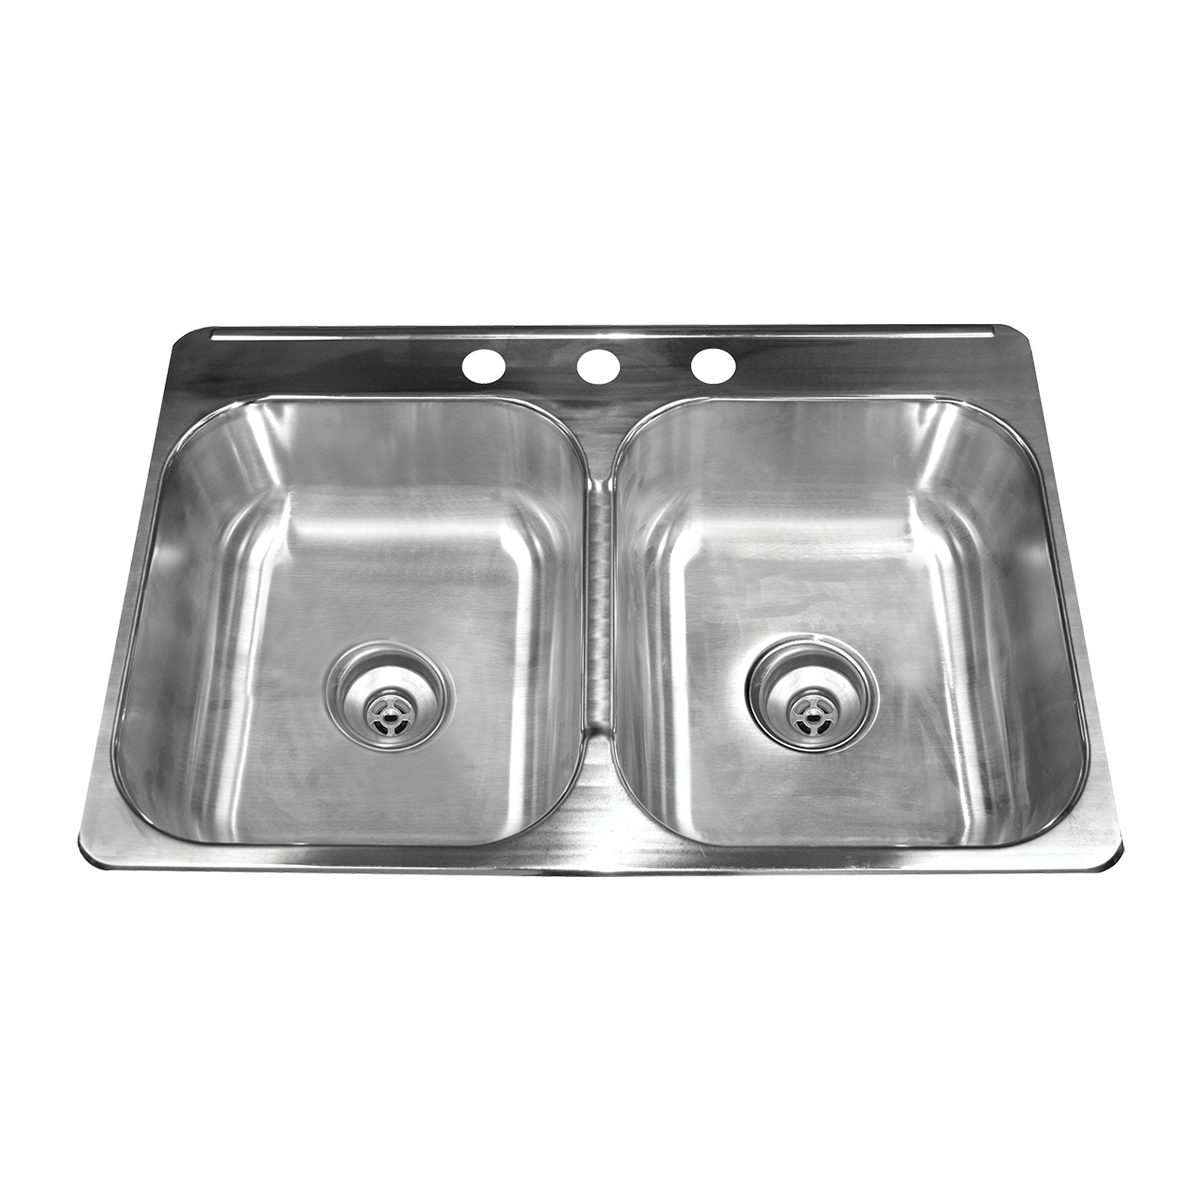 DOUBLE BOWL DROP-IN STAINLESS STEEL SINK